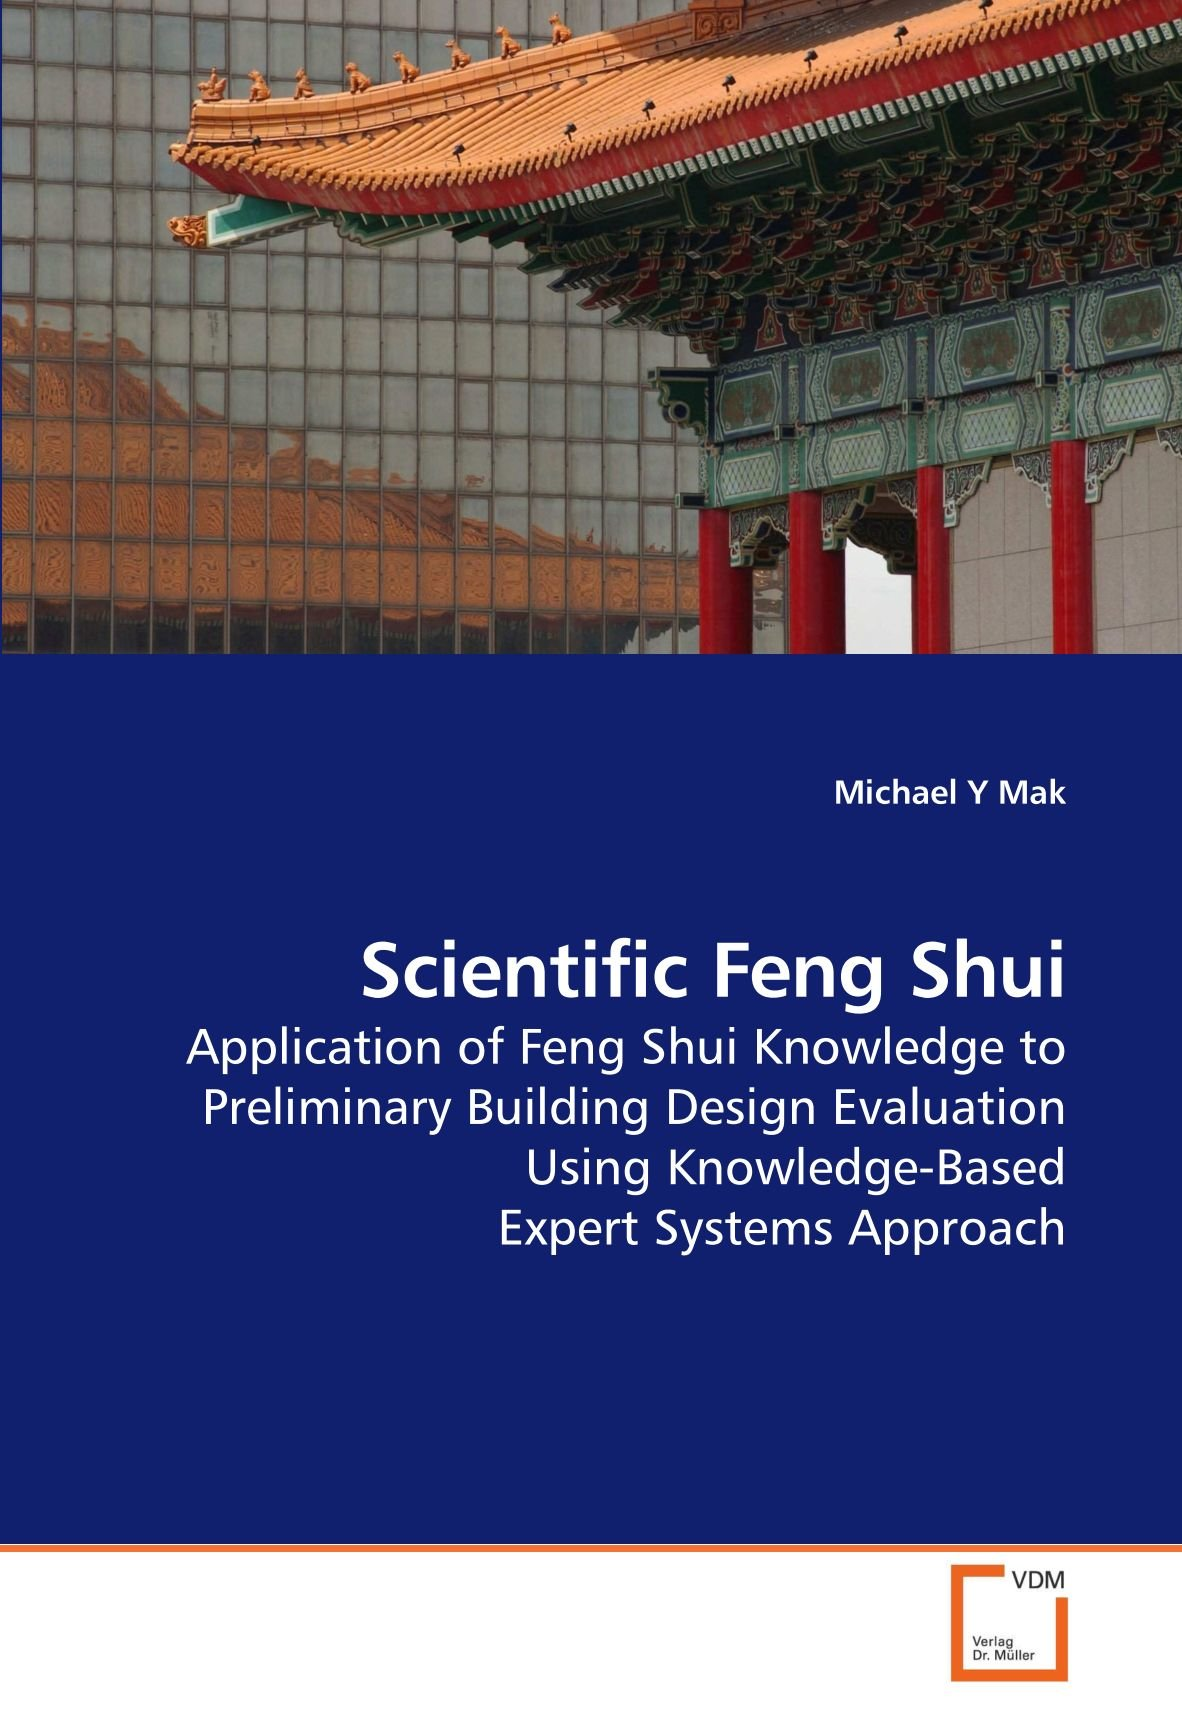 Scientific Feng Shui: Application of Feng Shui Knowledge to Preliminary Building Design Evaluation Using Knowledge-Based Expert Systems Approach